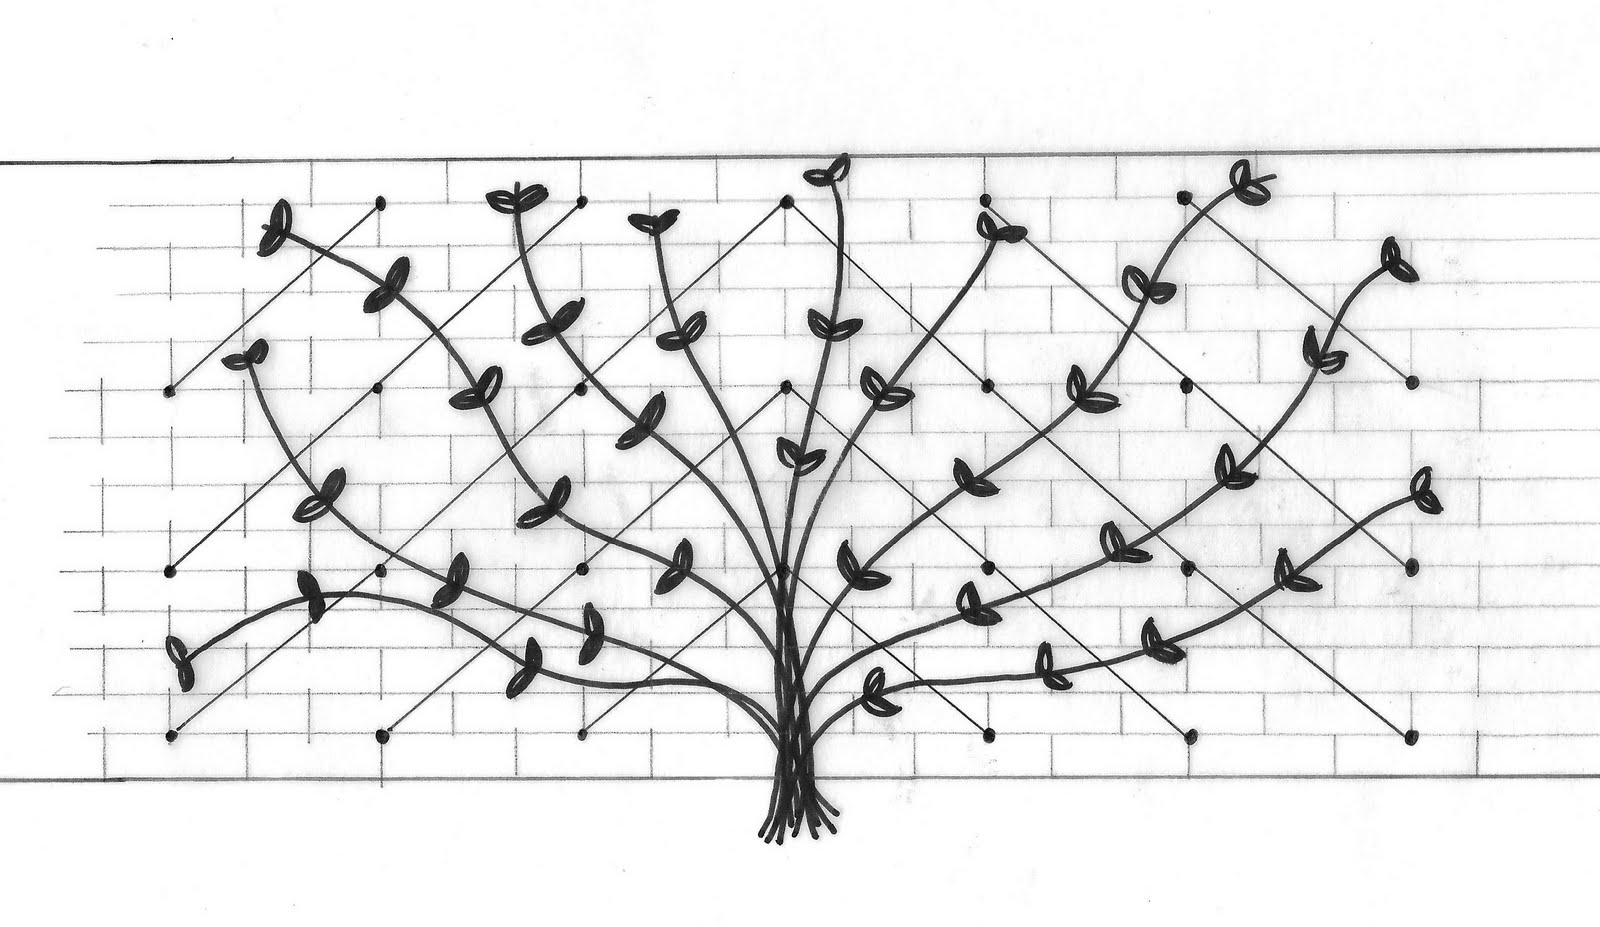 The Absent Minded Gardener How To Make A Wire Trellis For